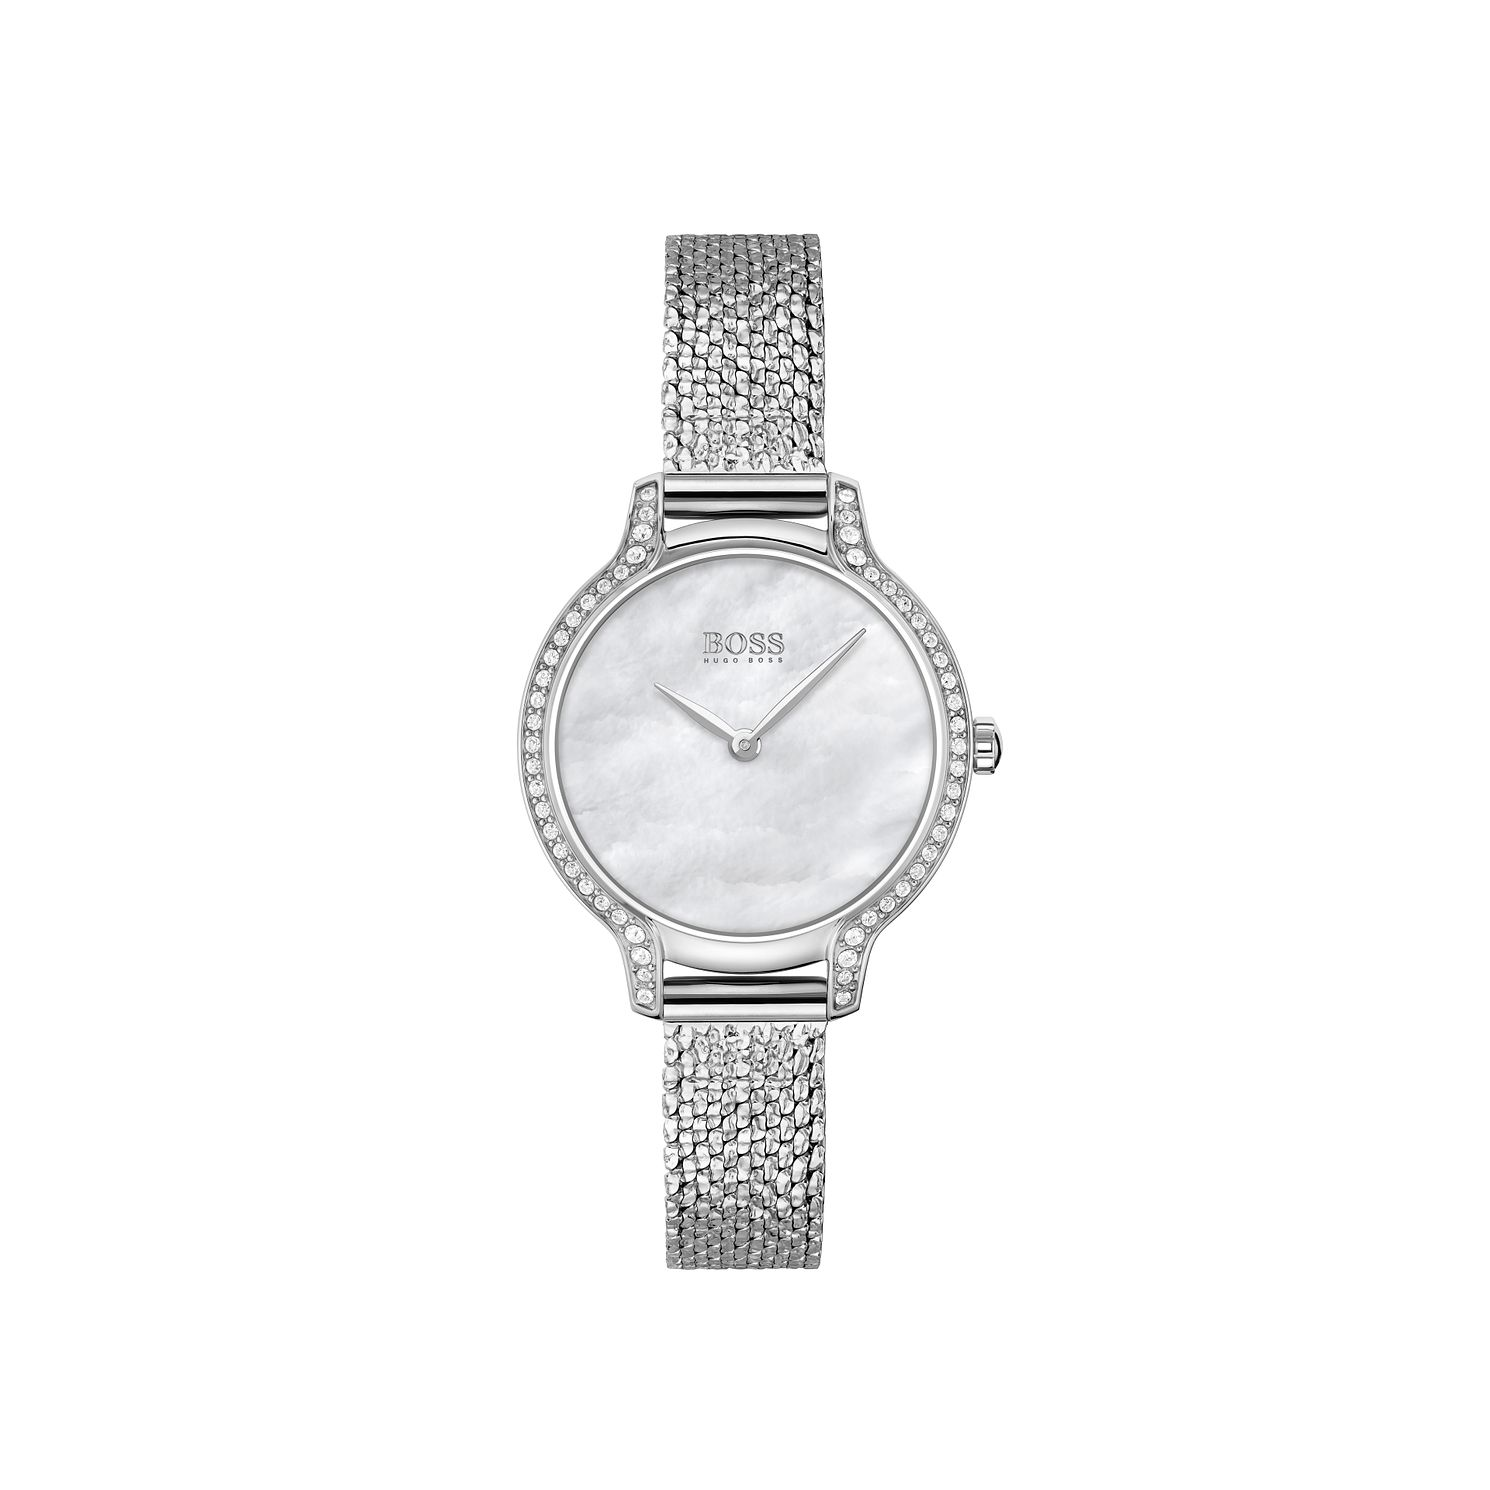 BOSS Gala Crystal Ladies' Stainless Steel Bracelet Watch - Product number 3847446